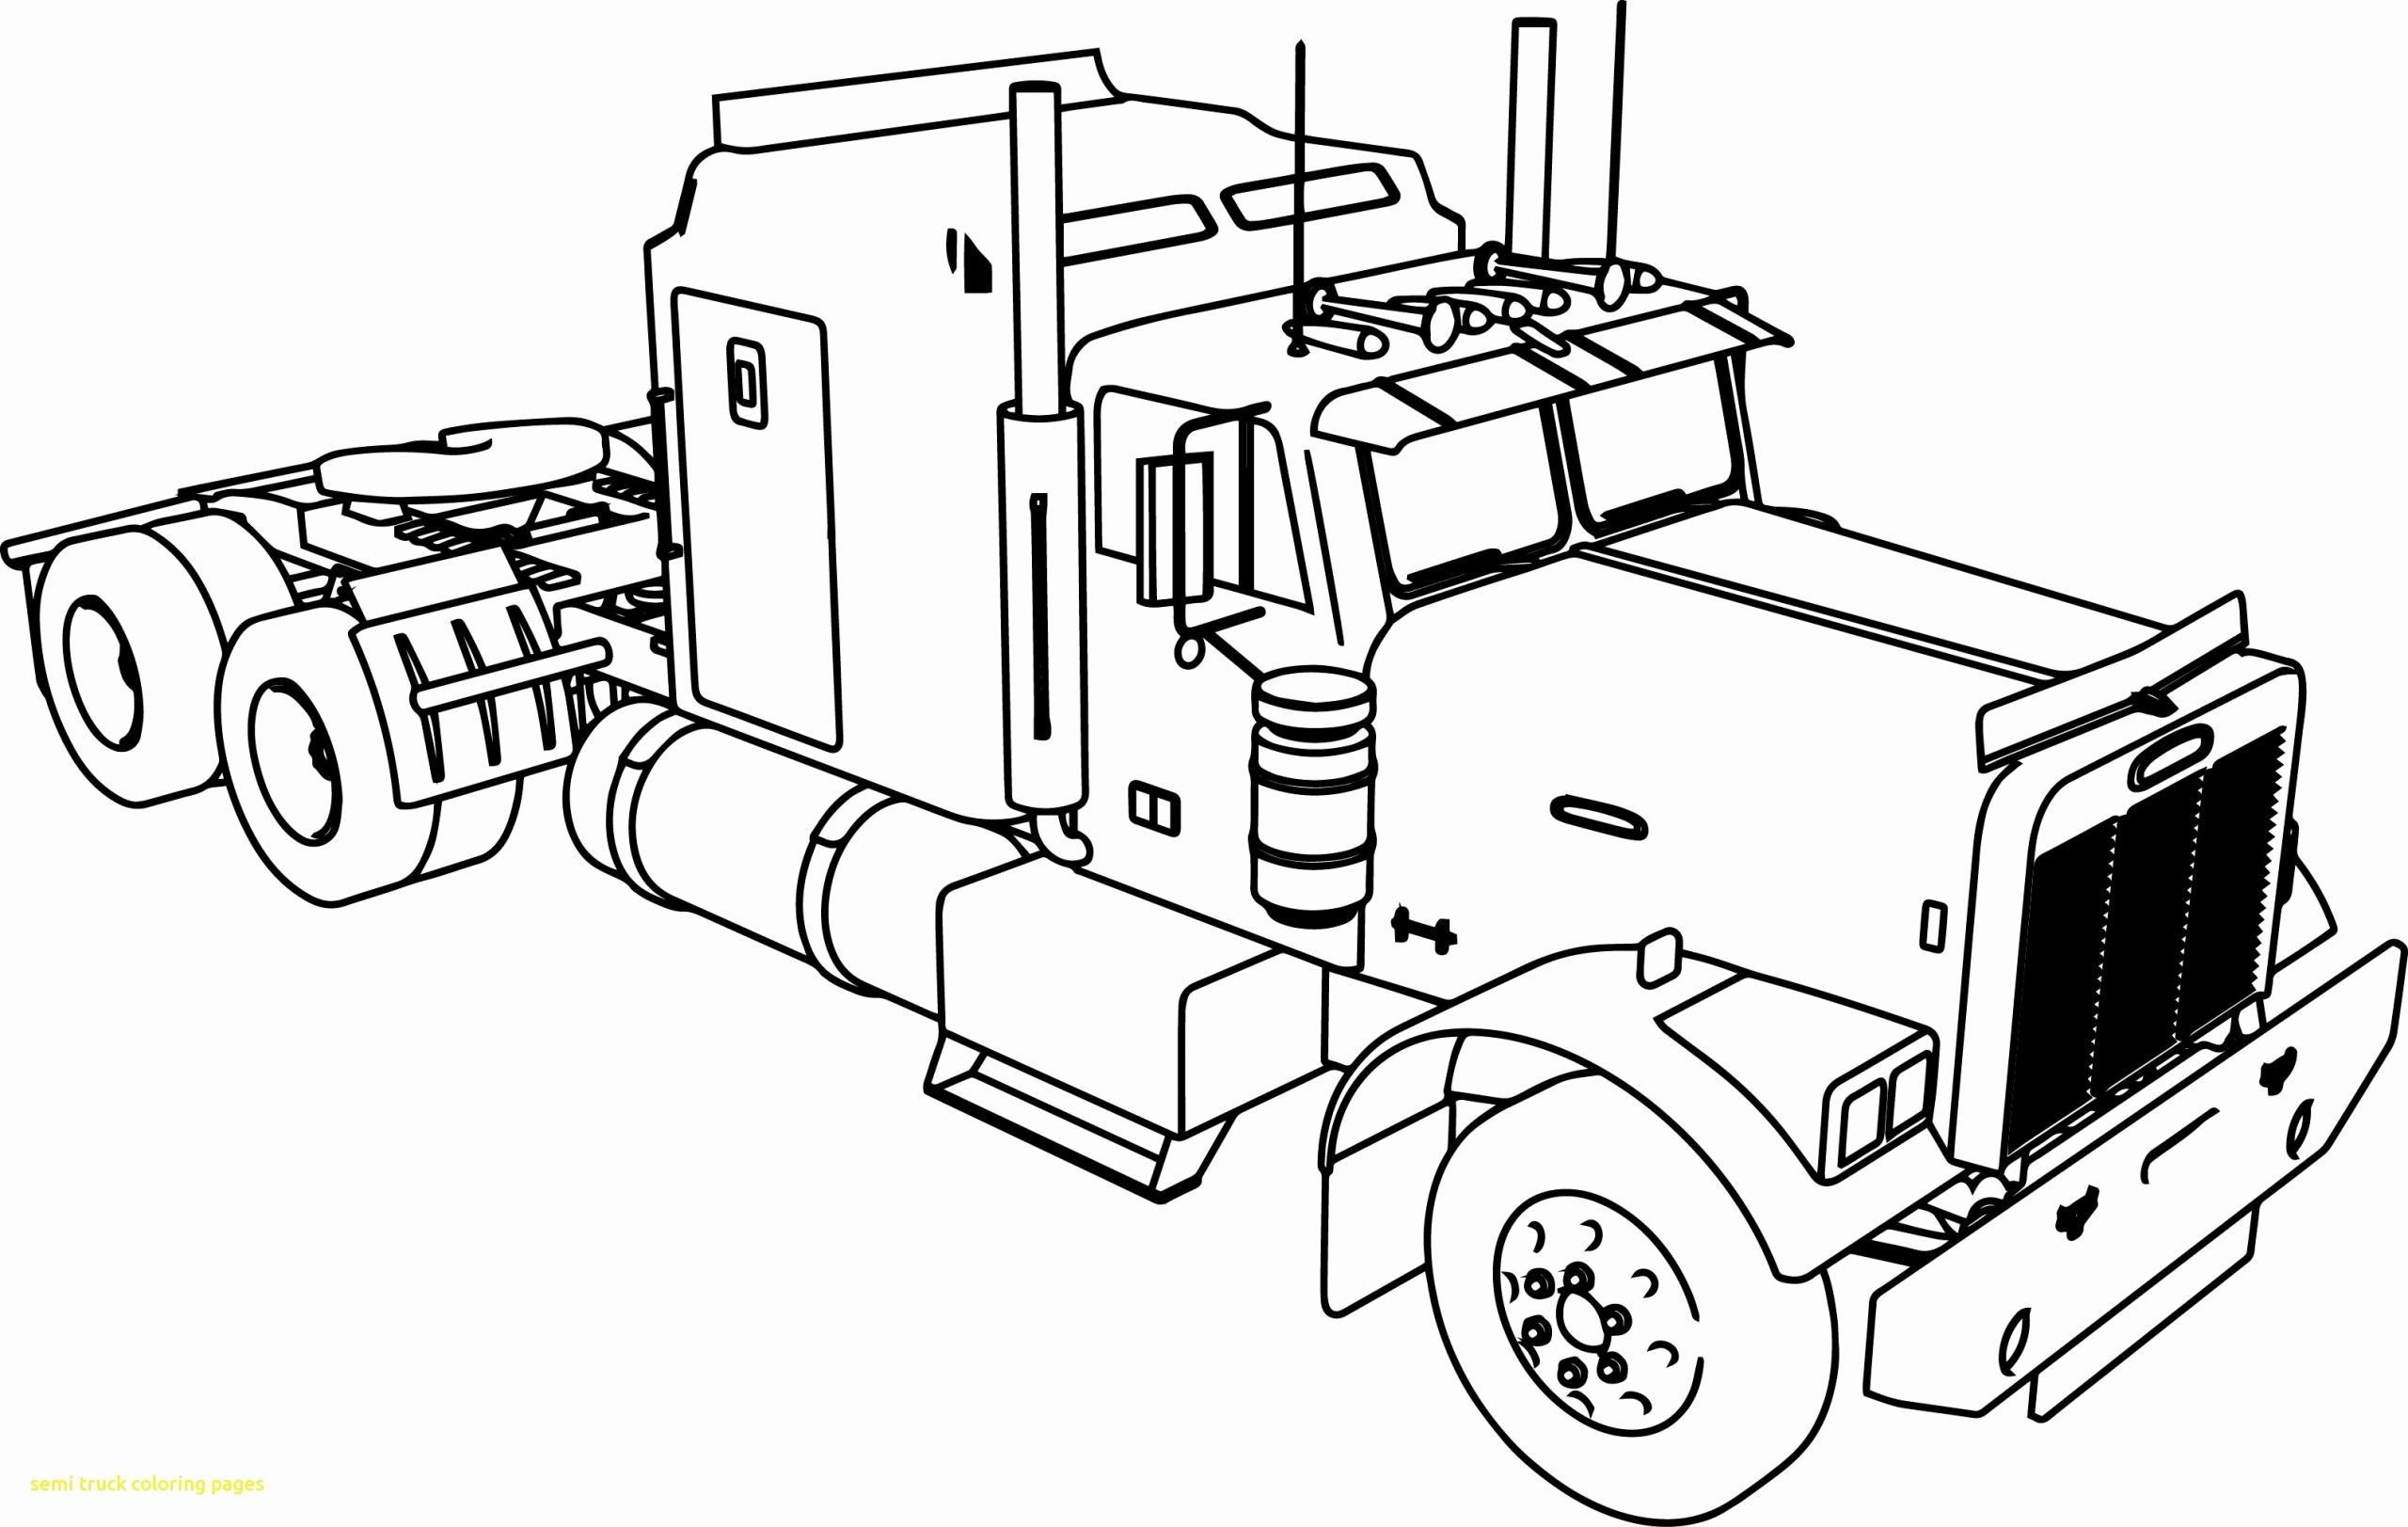 Free Coloring Books By Mail Best Of Mail Truck Coloring Page At Getcolorings Truck Coloring Pages Tractor Coloring Pages Monster Truck Coloring Pages